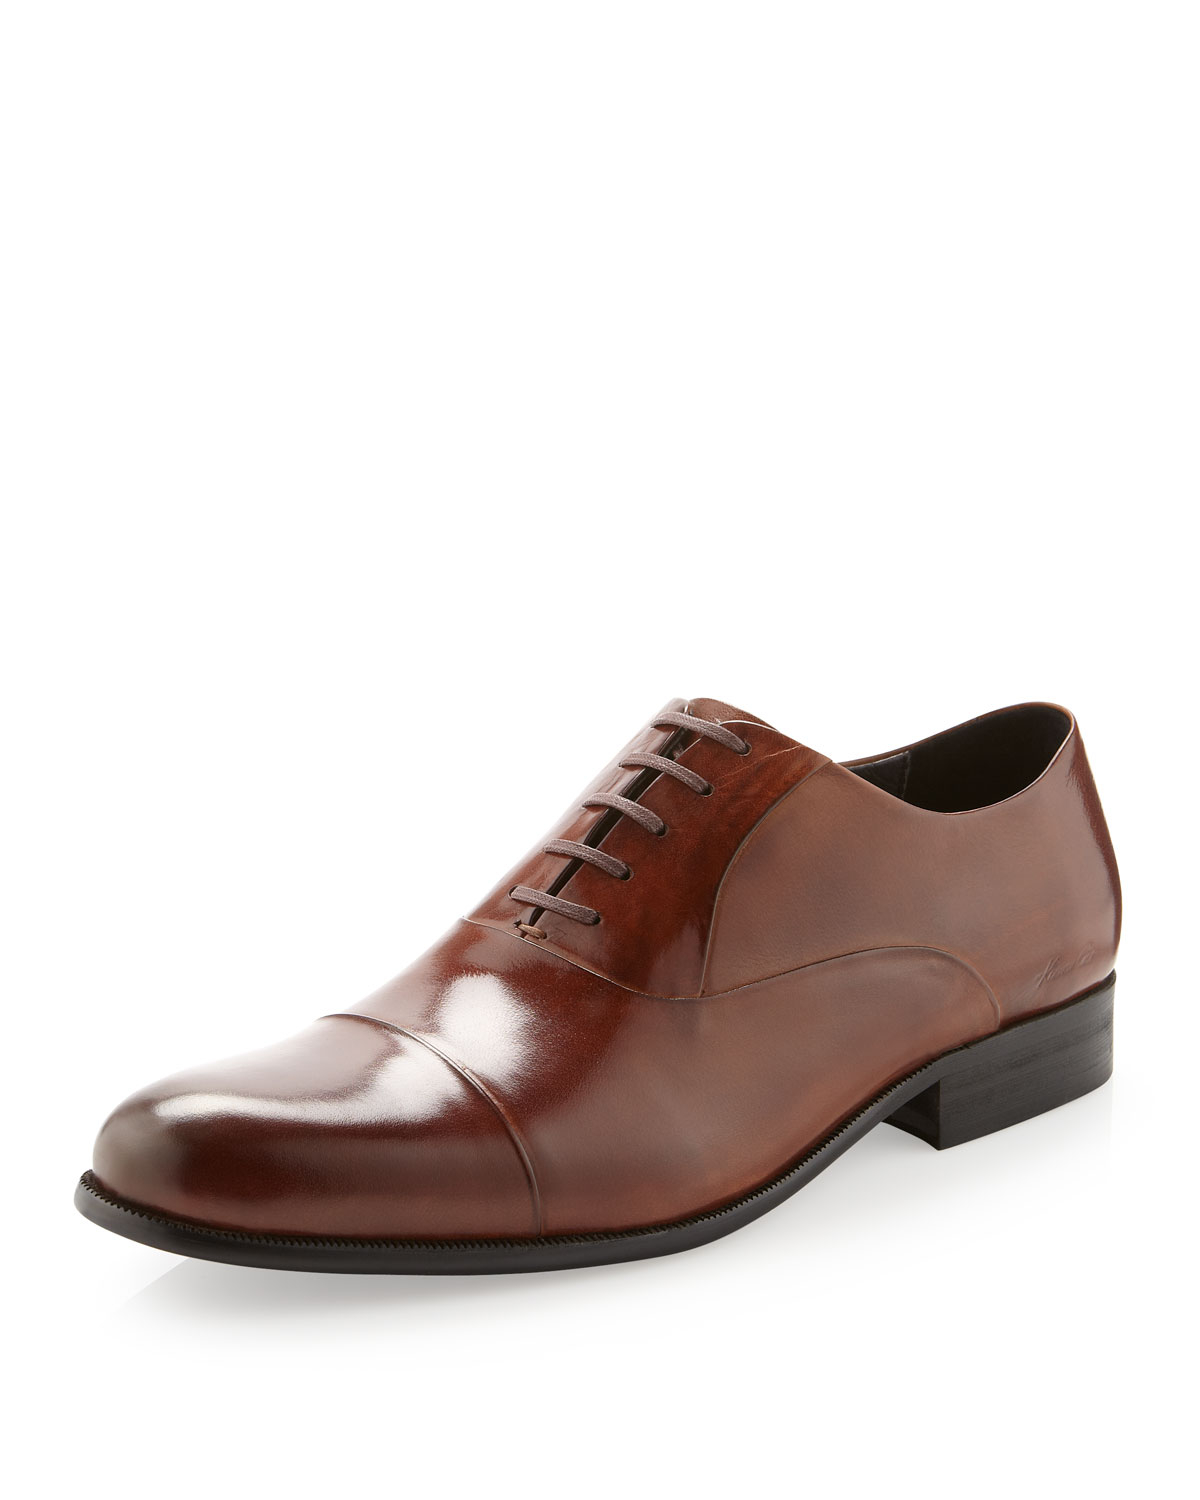 544d4137adfccd Lyst - Kenneth Cole Chief Executive Oxford Shoe Cognac in Brown for Men